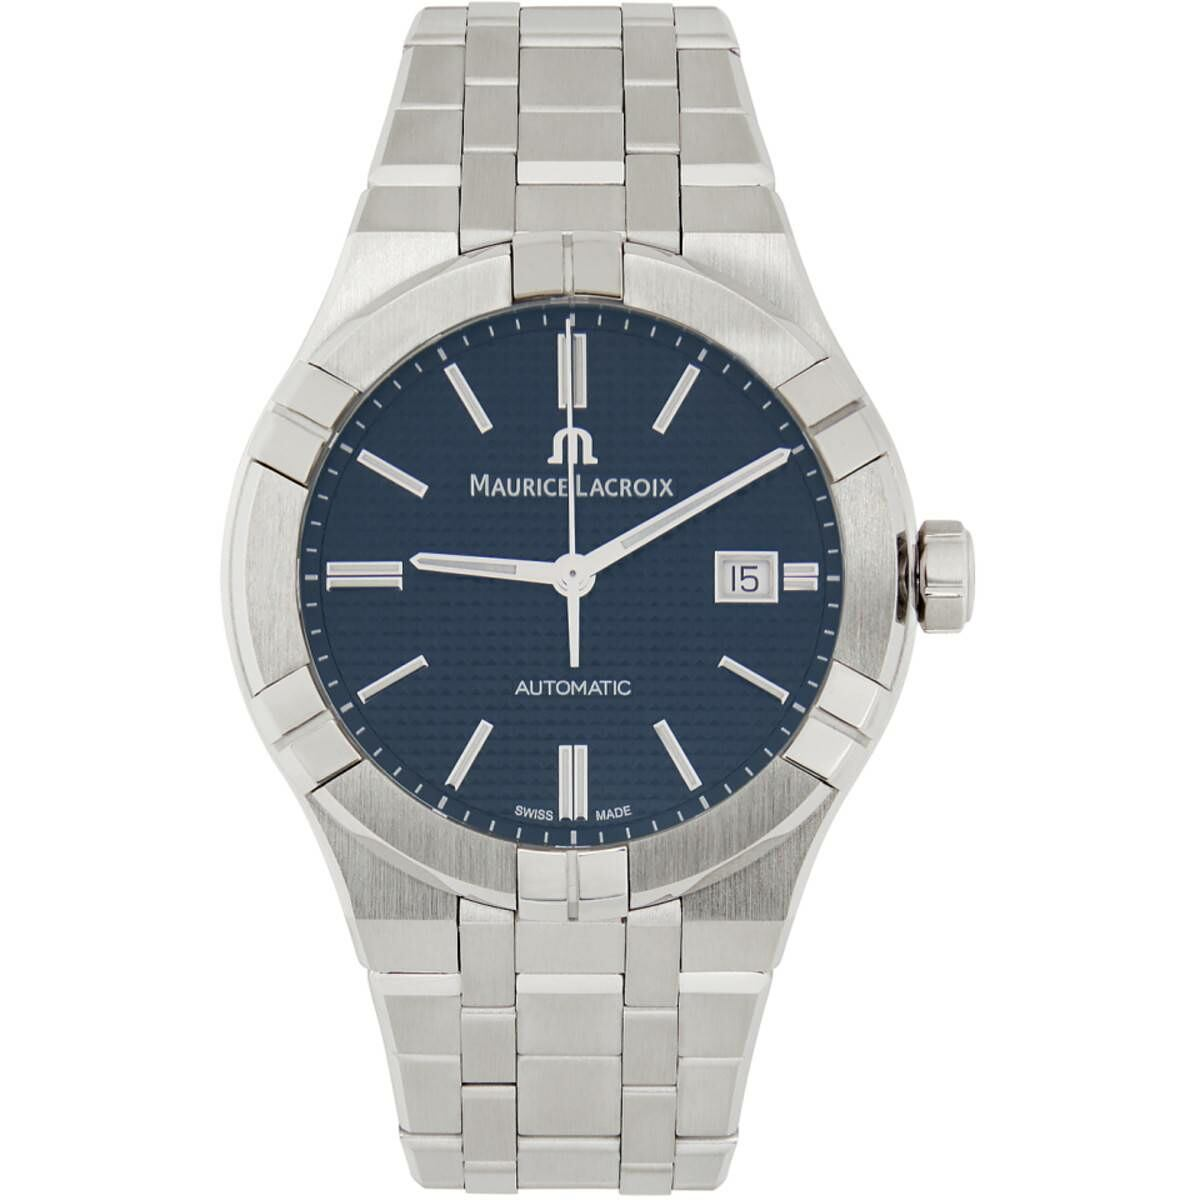 Maurice Lacroix Blue and Silver Aikon Automatic Watch Ssense USA MEN Men ACCESSORIES Mens WATCHES